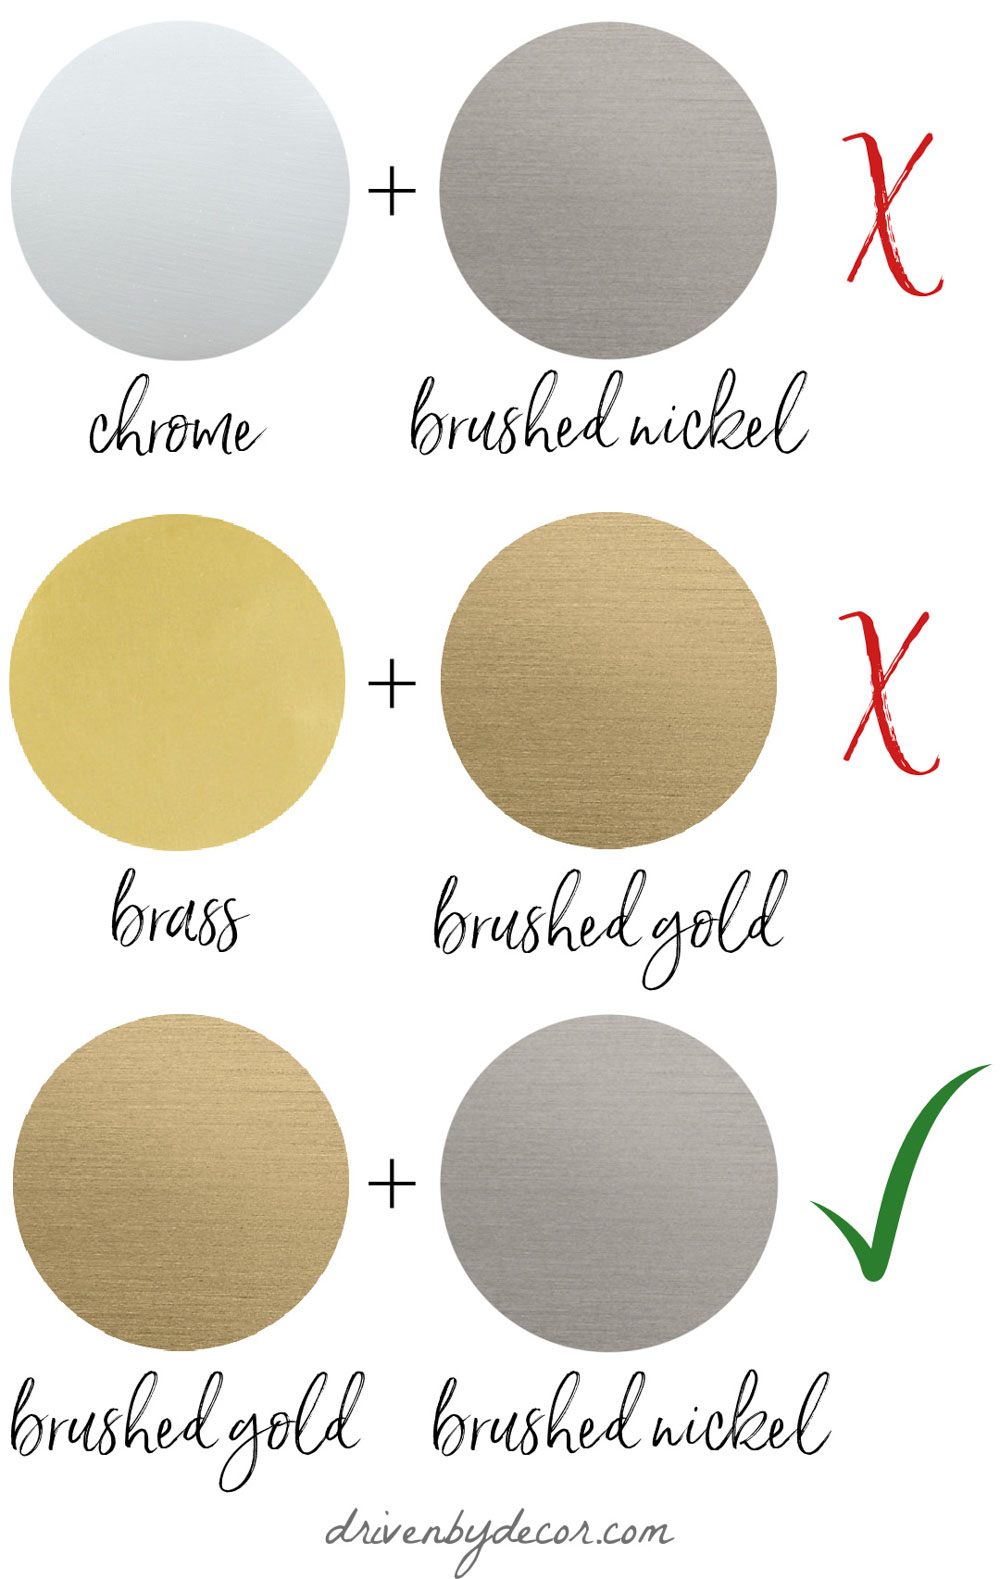 The Do's and Don'ts of mixed metals in home decor!